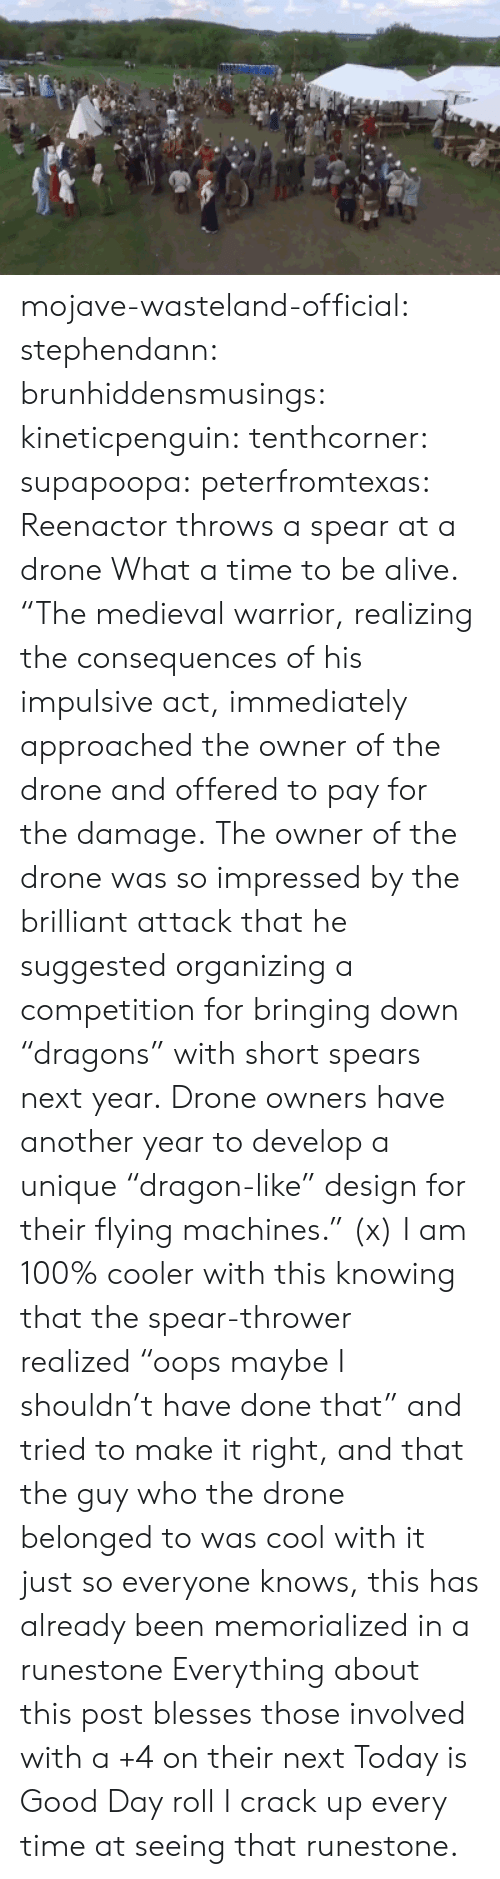 """impulsive: mojave-wasteland-official: stephendann:  brunhiddensmusings:  kineticpenguin:  tenthcorner:  supapoopa:  peterfromtexas:    Reenactor throws a spear at a drone    What a time to be alive.  """"The medieval warrior, realizing the consequences of his impulsive act, immediately approached the owner of the drone and offered to pay for the damage. The owner of the drone was so impressed by the brilliant attack that he suggested organizing a competition for bringing down """"dragons"""" with short spears next year. Drone owners have another year to develop a unique """"dragon-like"""" design for their flying machines."""" (x)  I am 100% cooler with this knowing that the spear-thrower realized""""oops maybe I shouldn't have done that"""" and tried to make it right, andthat the guy who the drone belonged to was cool with it  just so everyone knows, this has already been memorialized in a runestone  Everything about this post blesses those involved with a +4 on their next Today is Good Day roll  I crack up every time at seeing that runestone."""